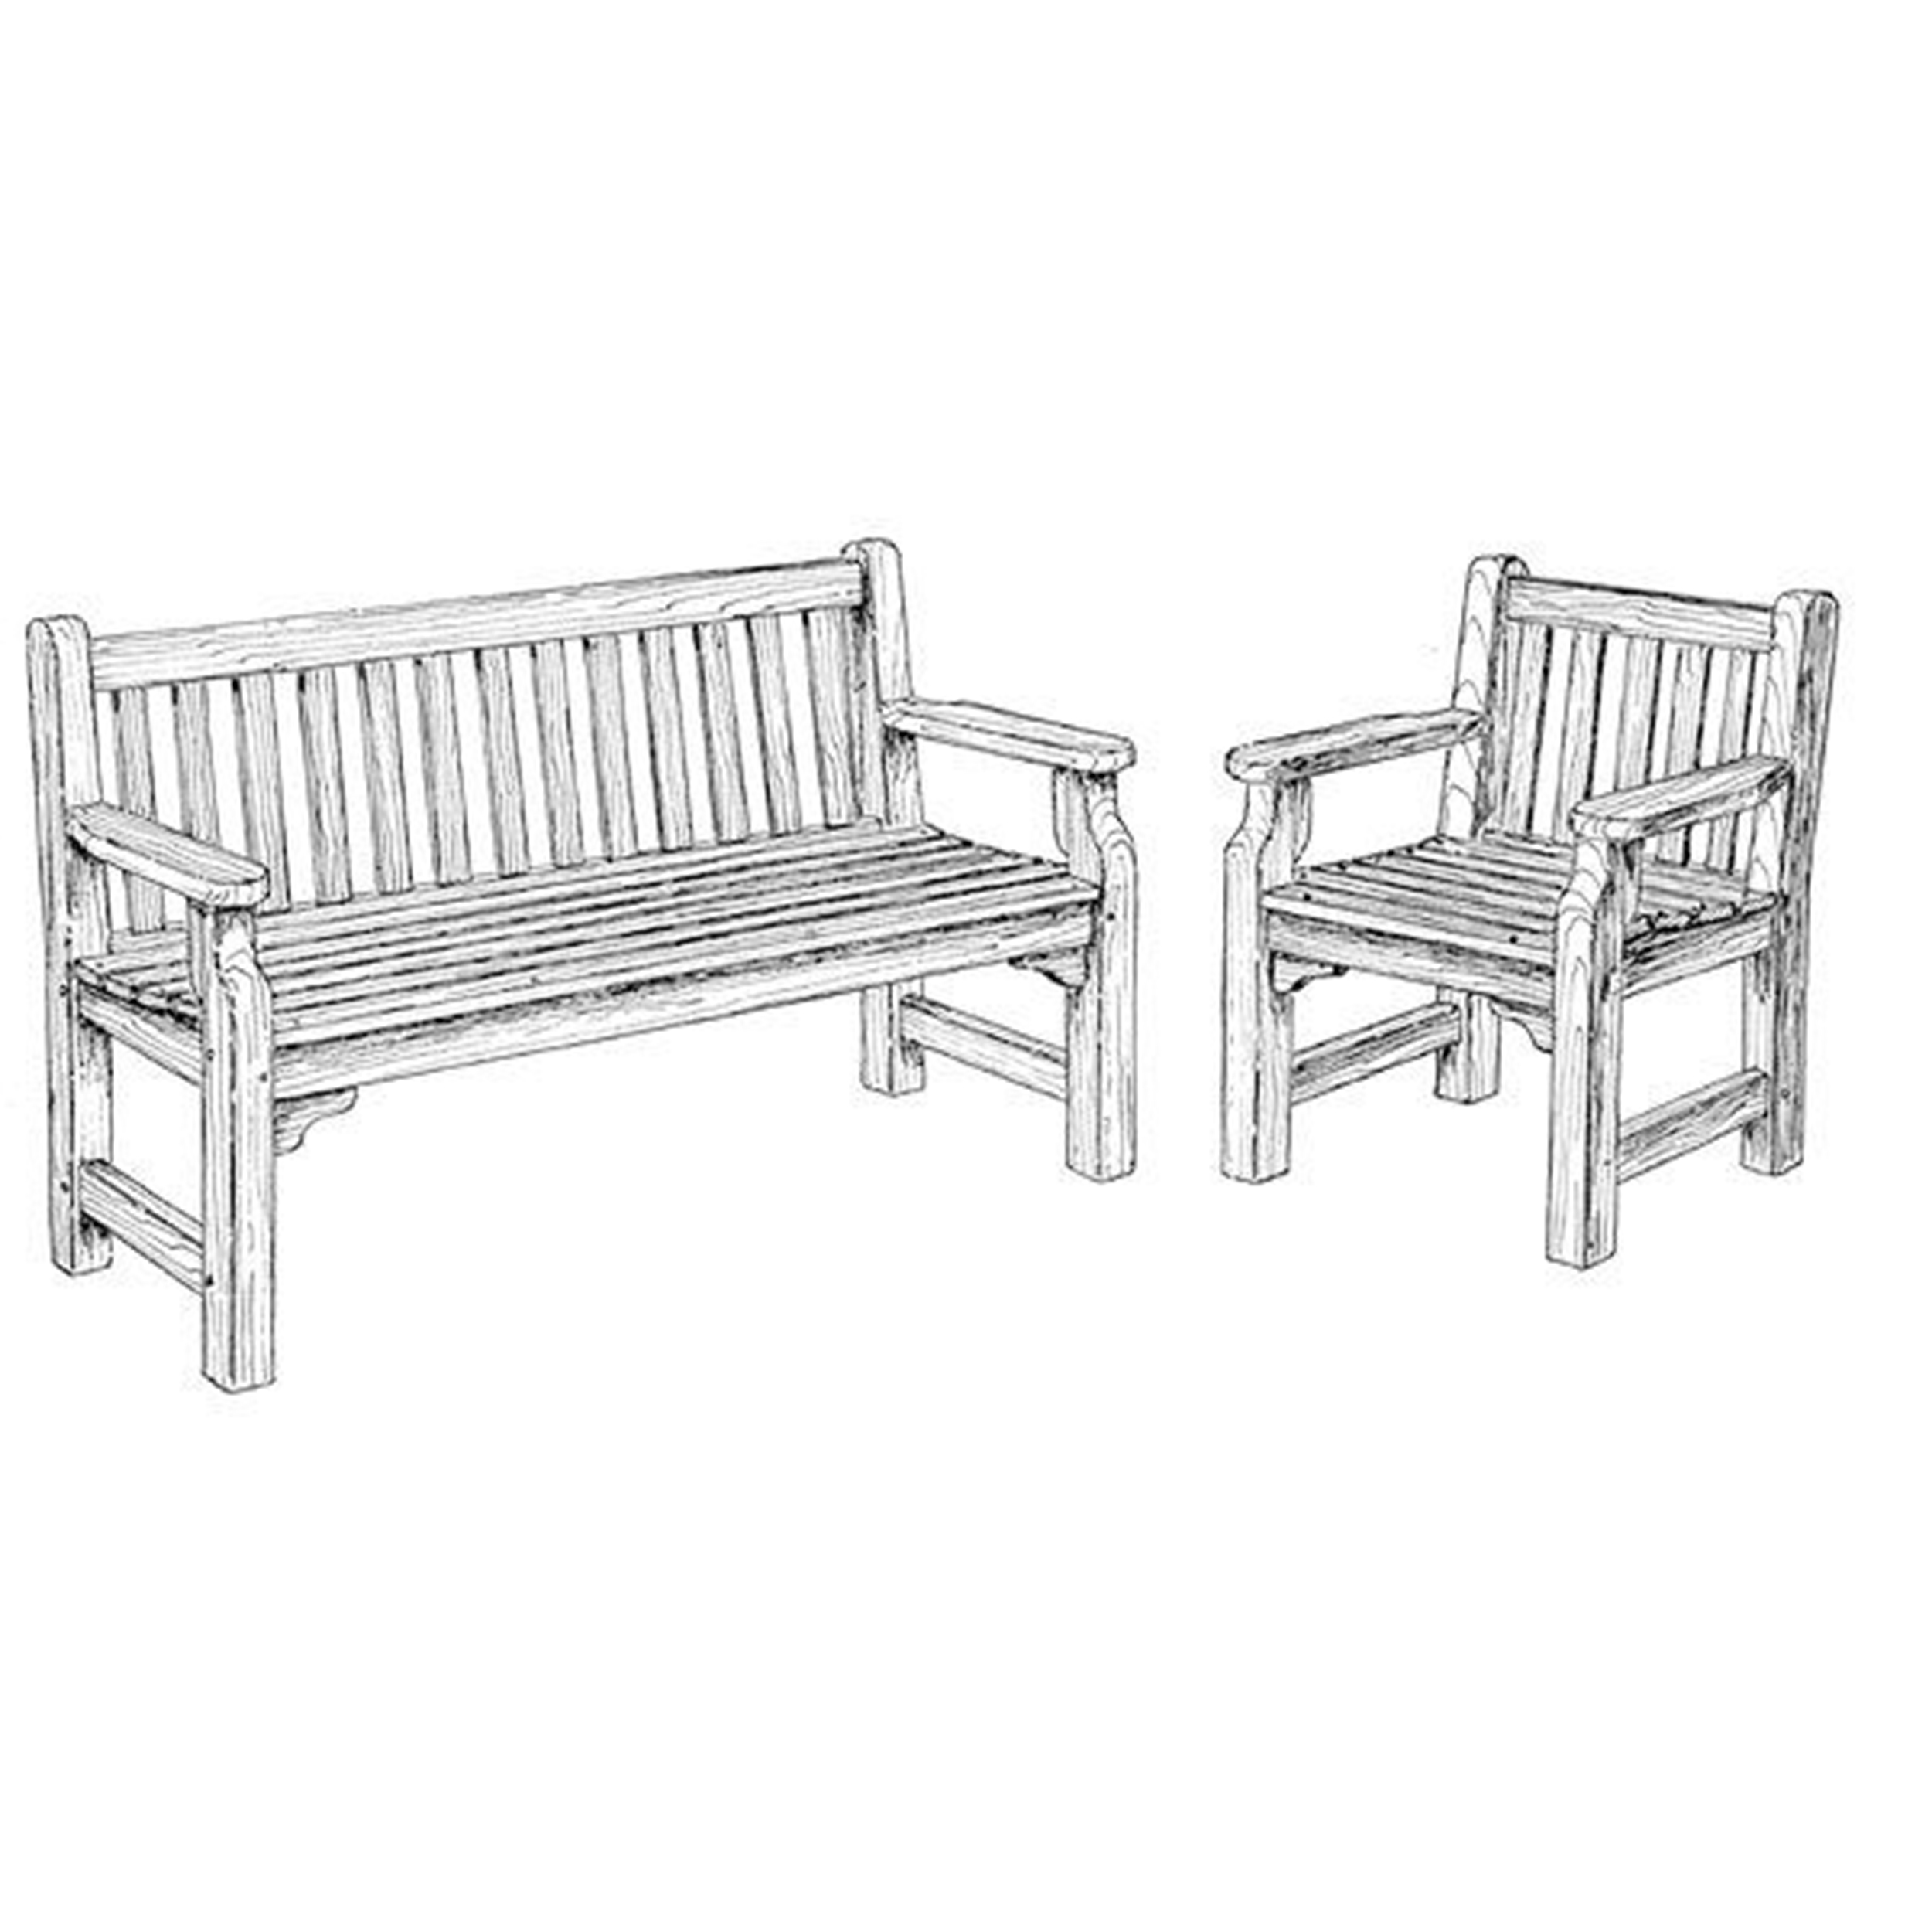 Woodworking Project Paper Plan to Build English Garden Bench and Chair